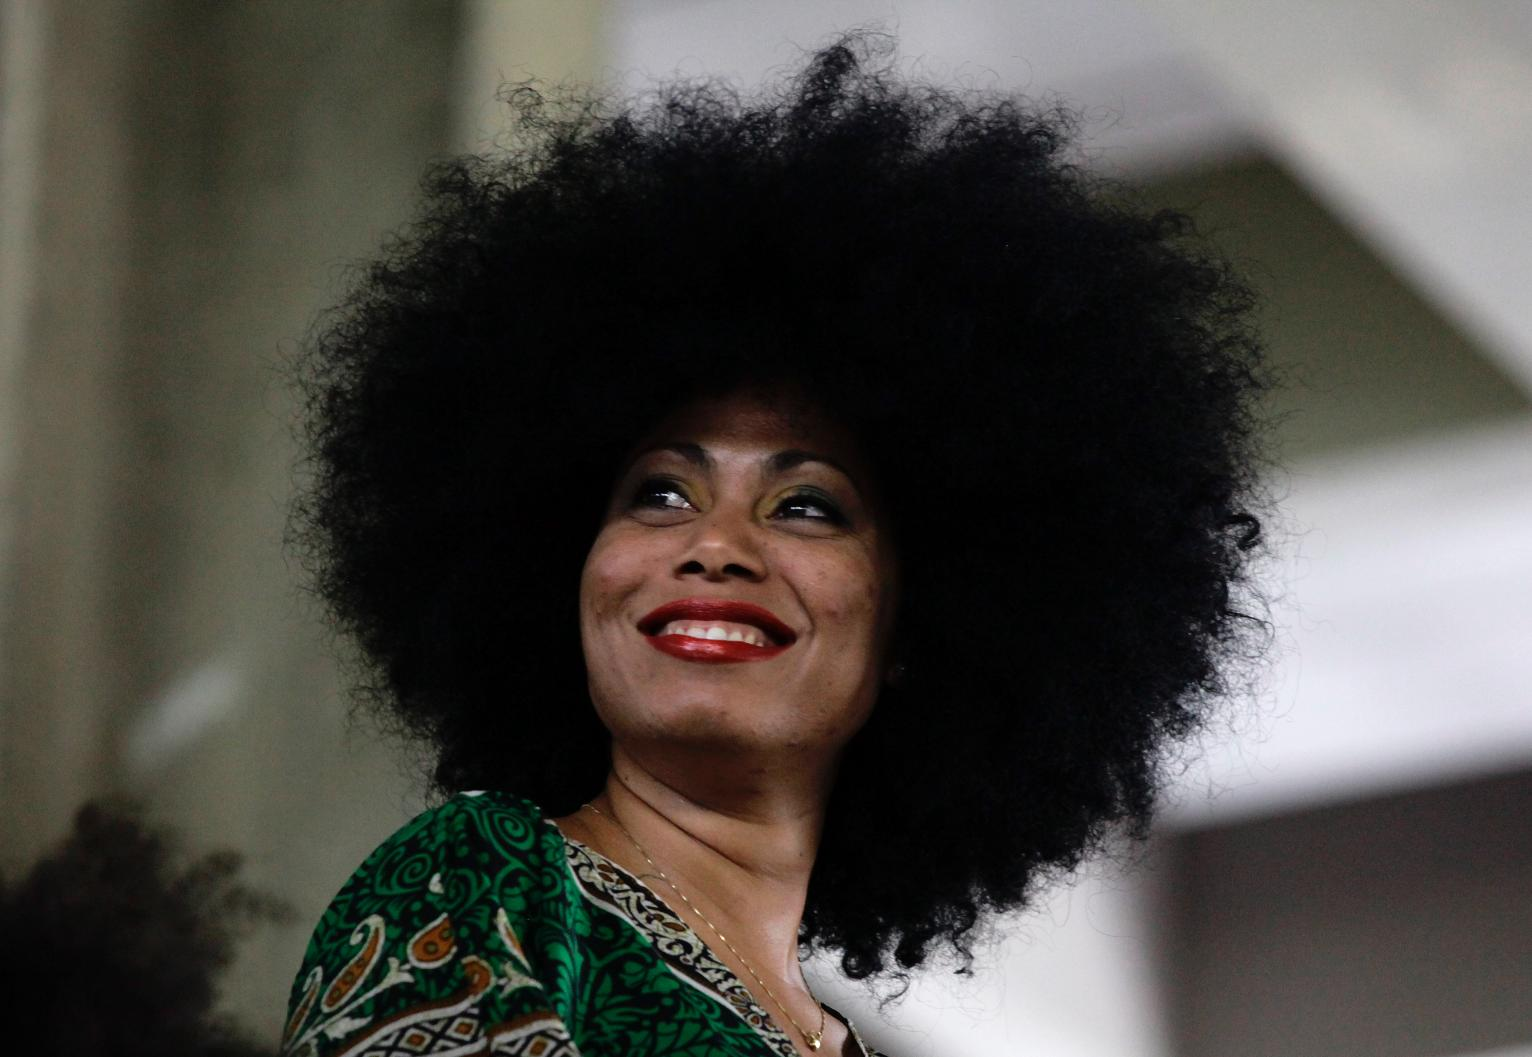 Cuban Artist Puts On Hair Competition To Bolster Black